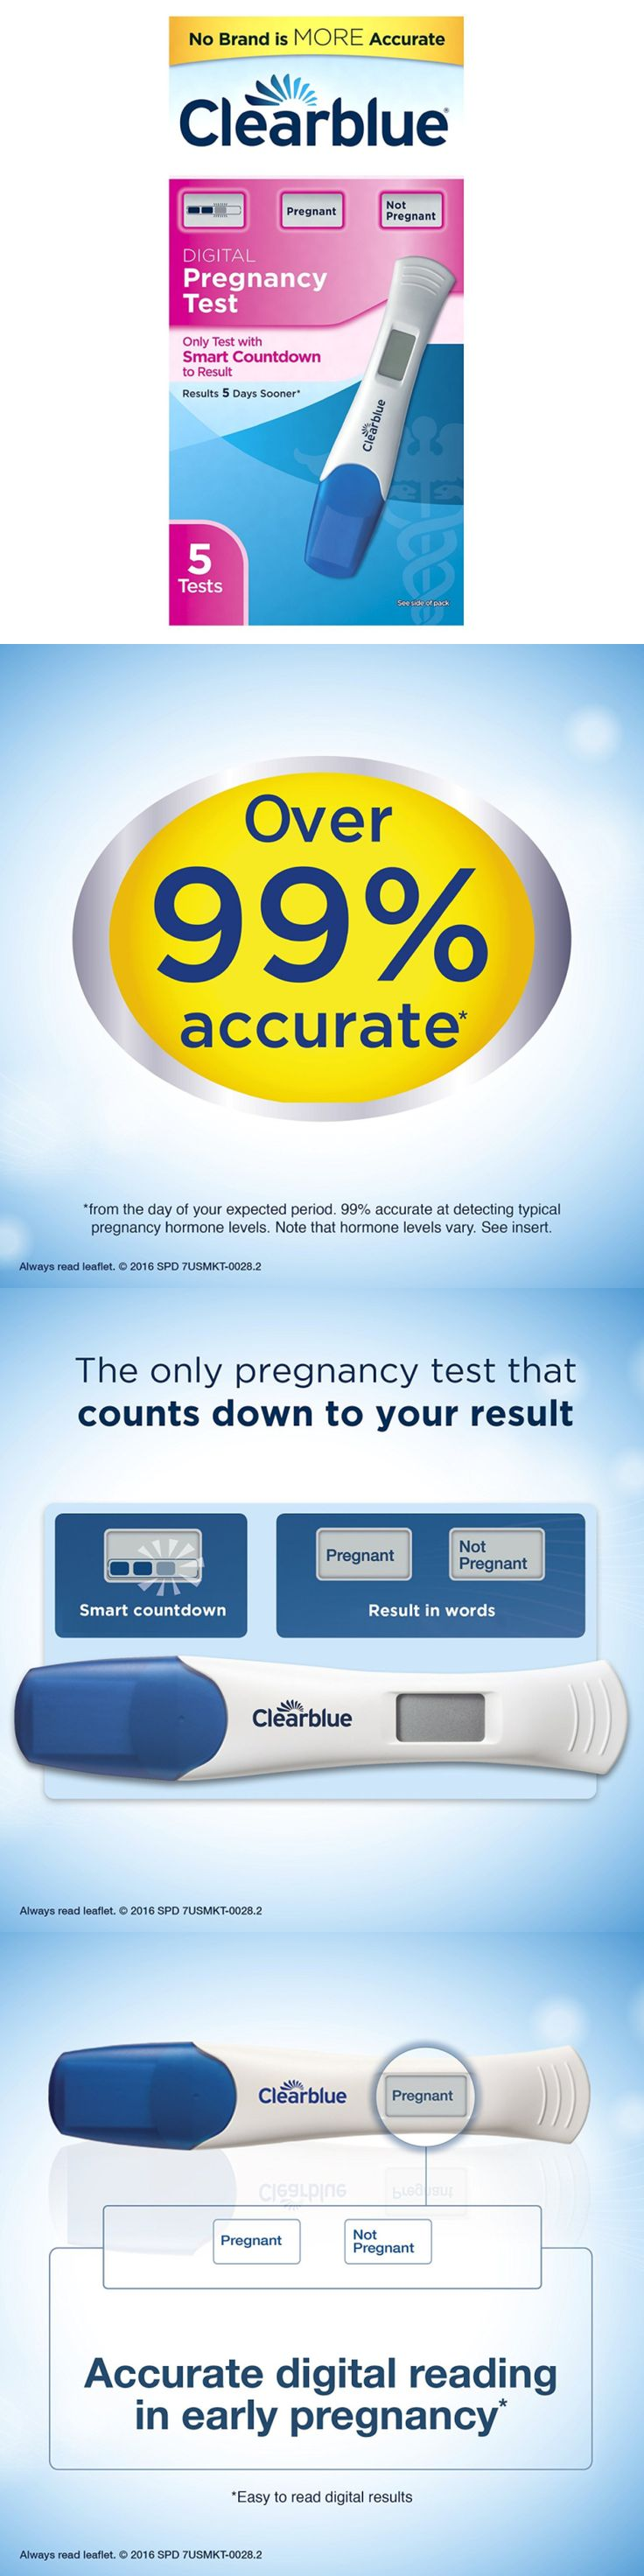 Pregnancy Tests: Clearblue Digital Pregnancy Test With Smart Countdown, 5 Pregnancy Tests -> BUY IT NOW ONLY: $32.07 on eBay!